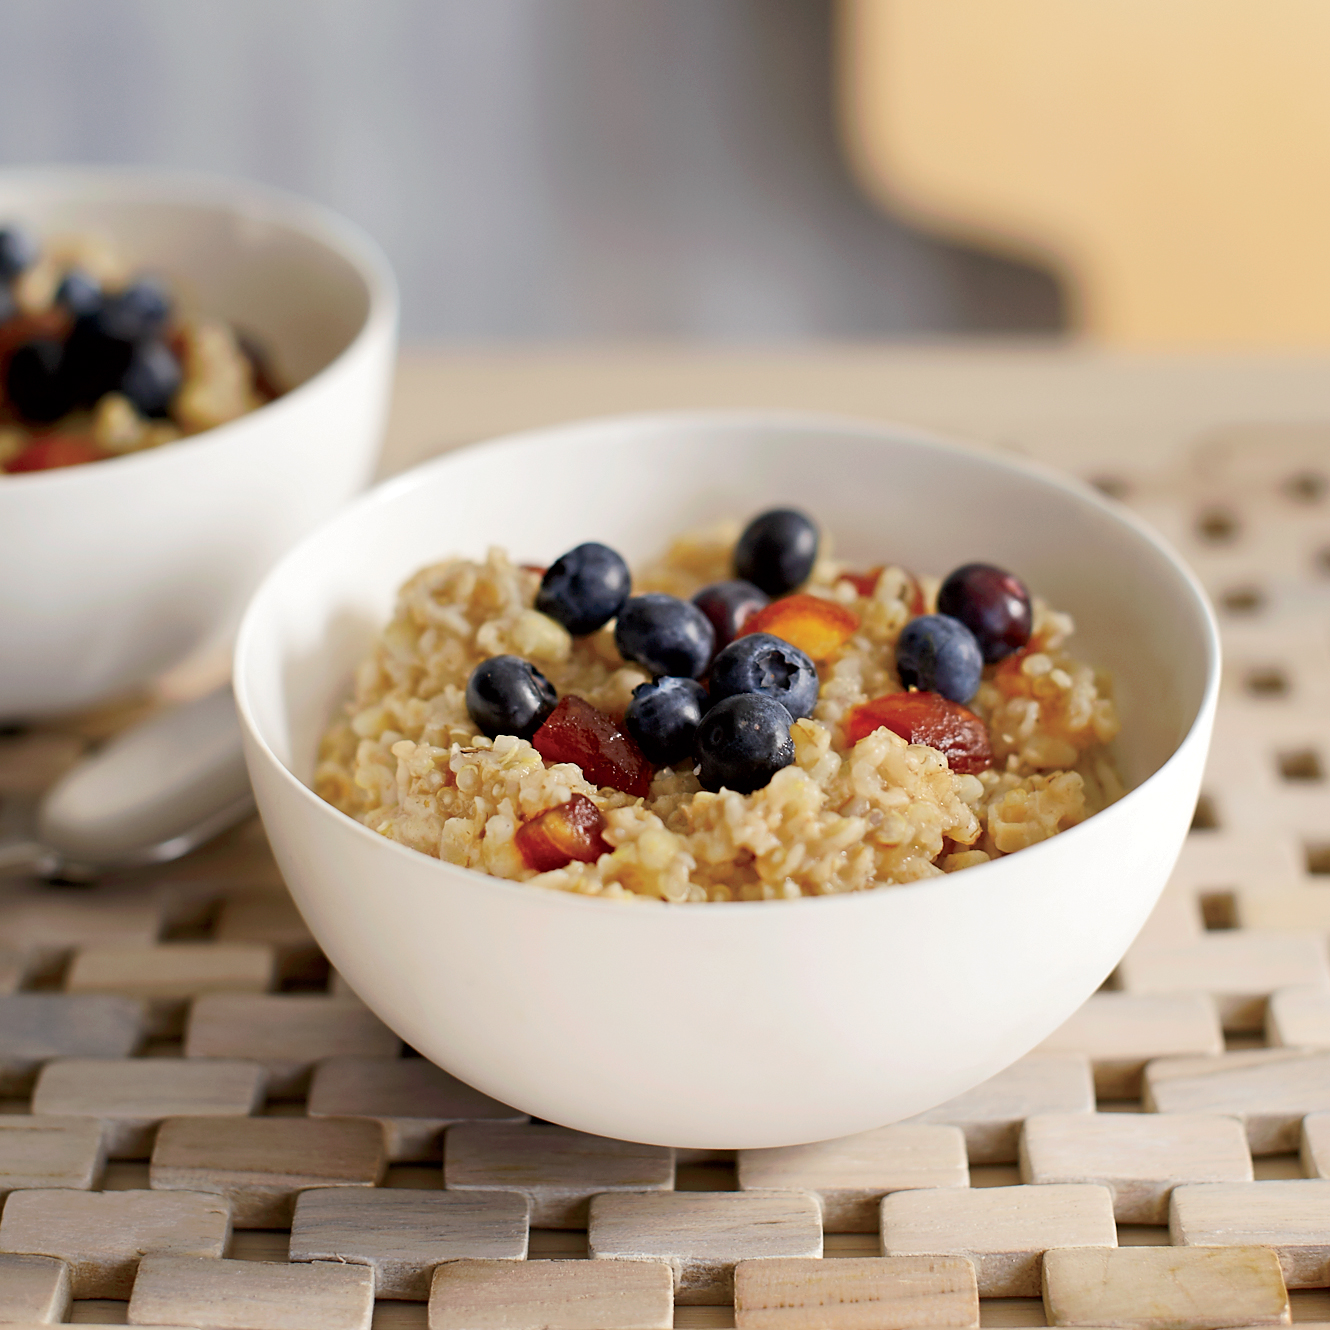 201107-r-Three-Grain-Cereal-with-Dates-and-Cinnamon.jpg